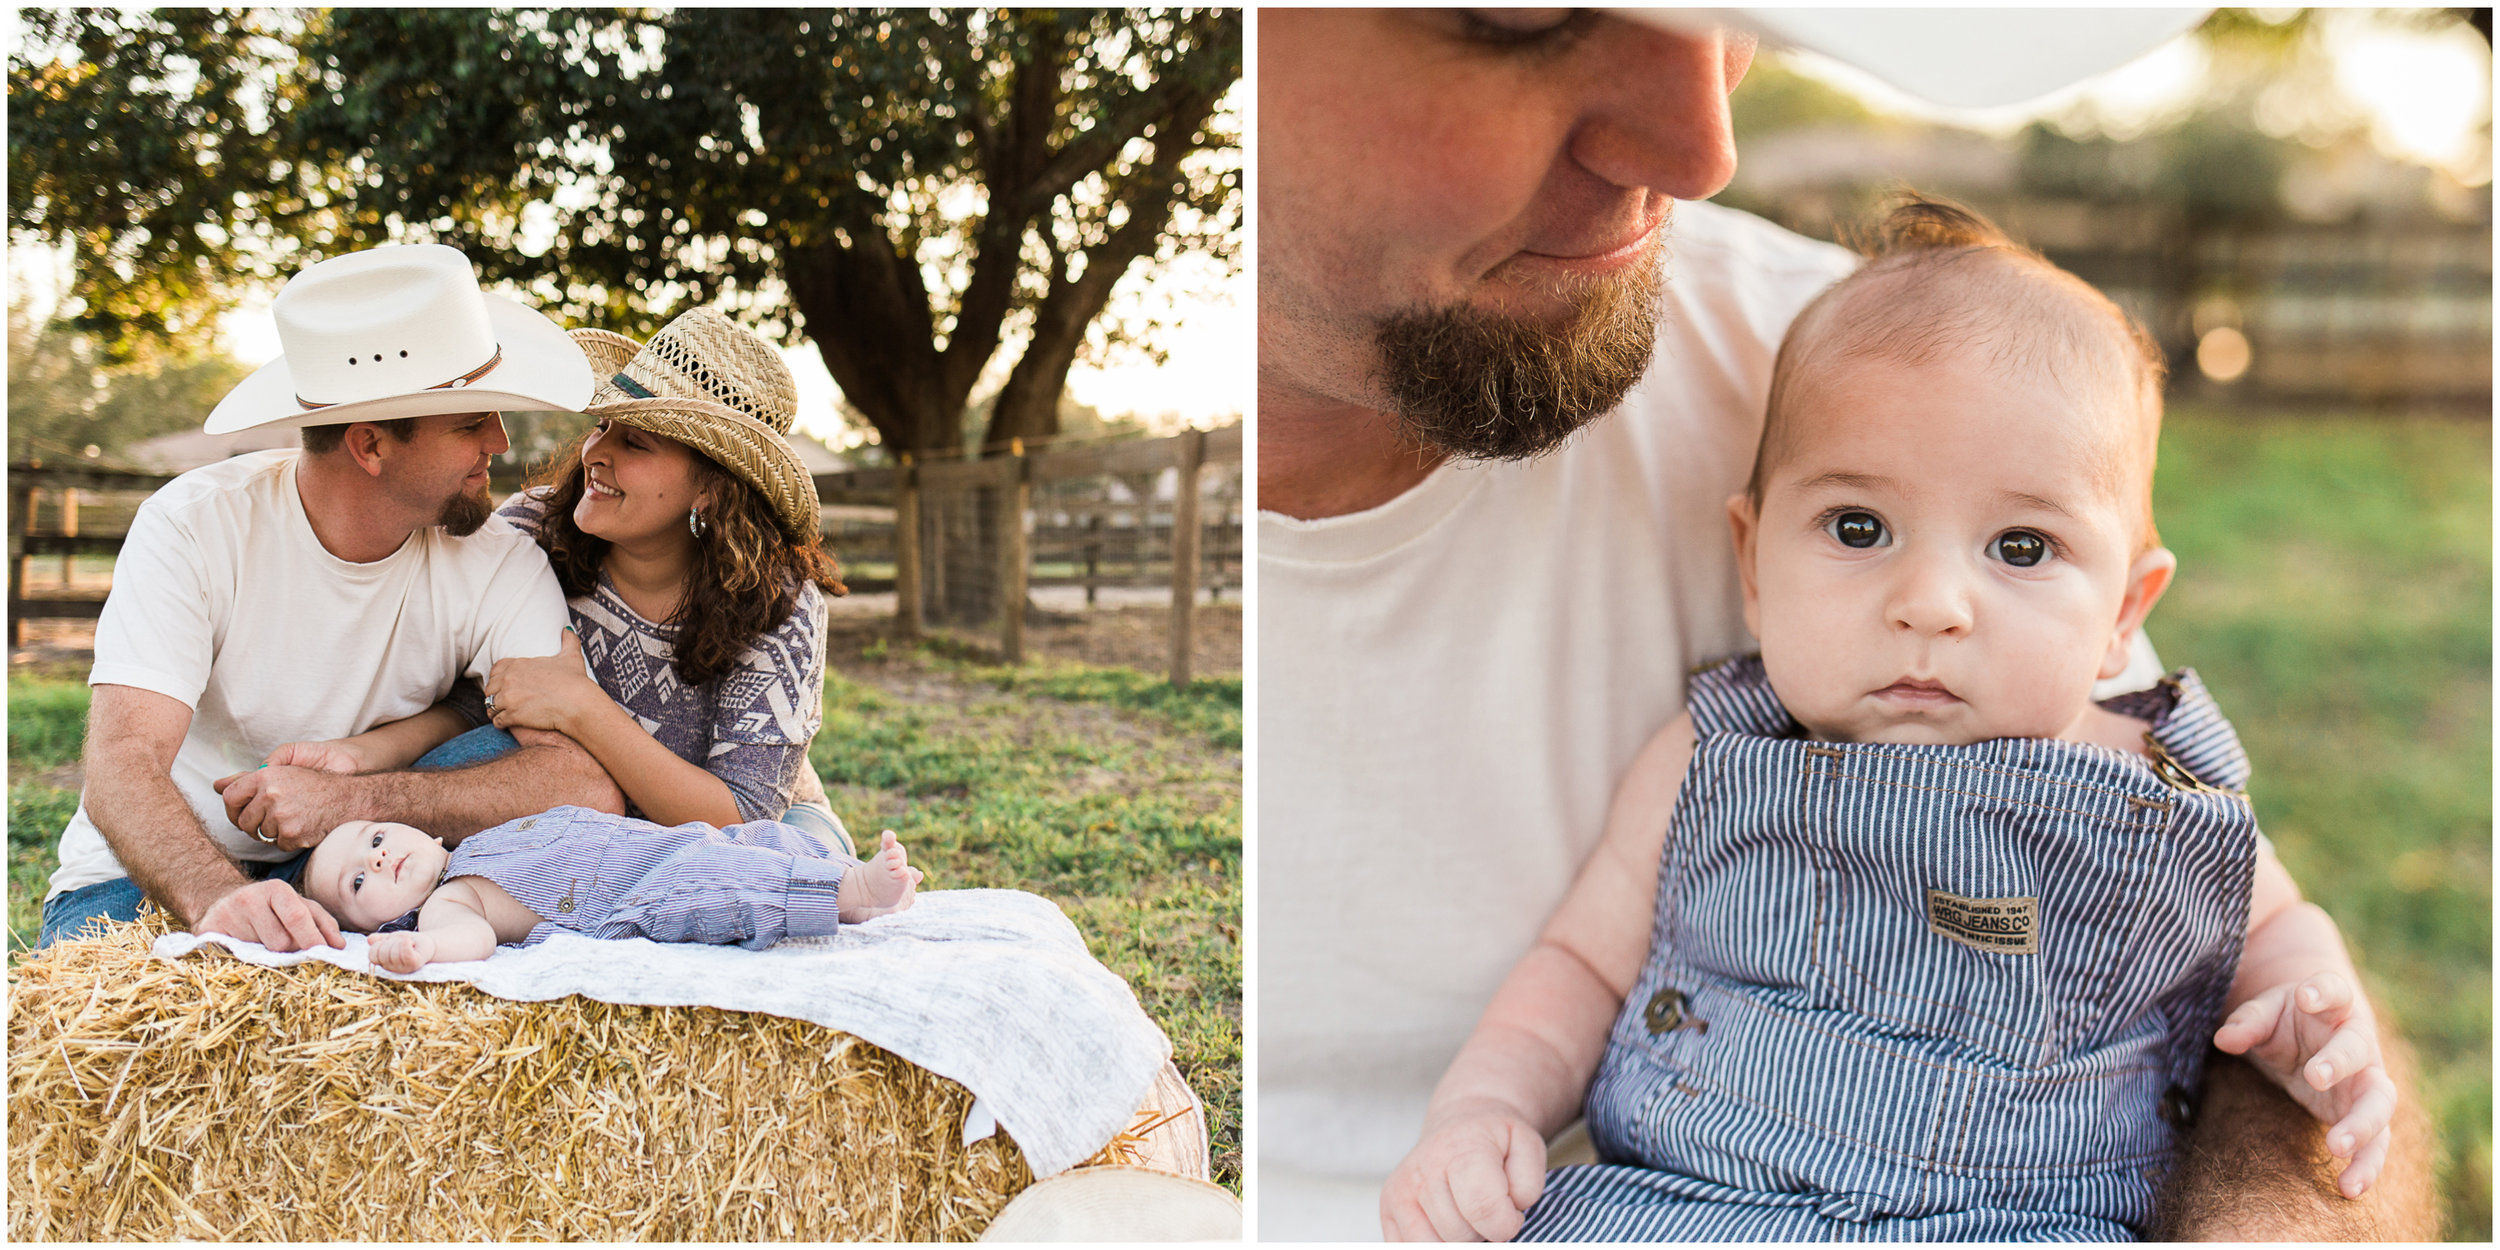 newborn-family-outdoor-photograher-delray-beach-boca-raton-coconut-creek-florida.jpg